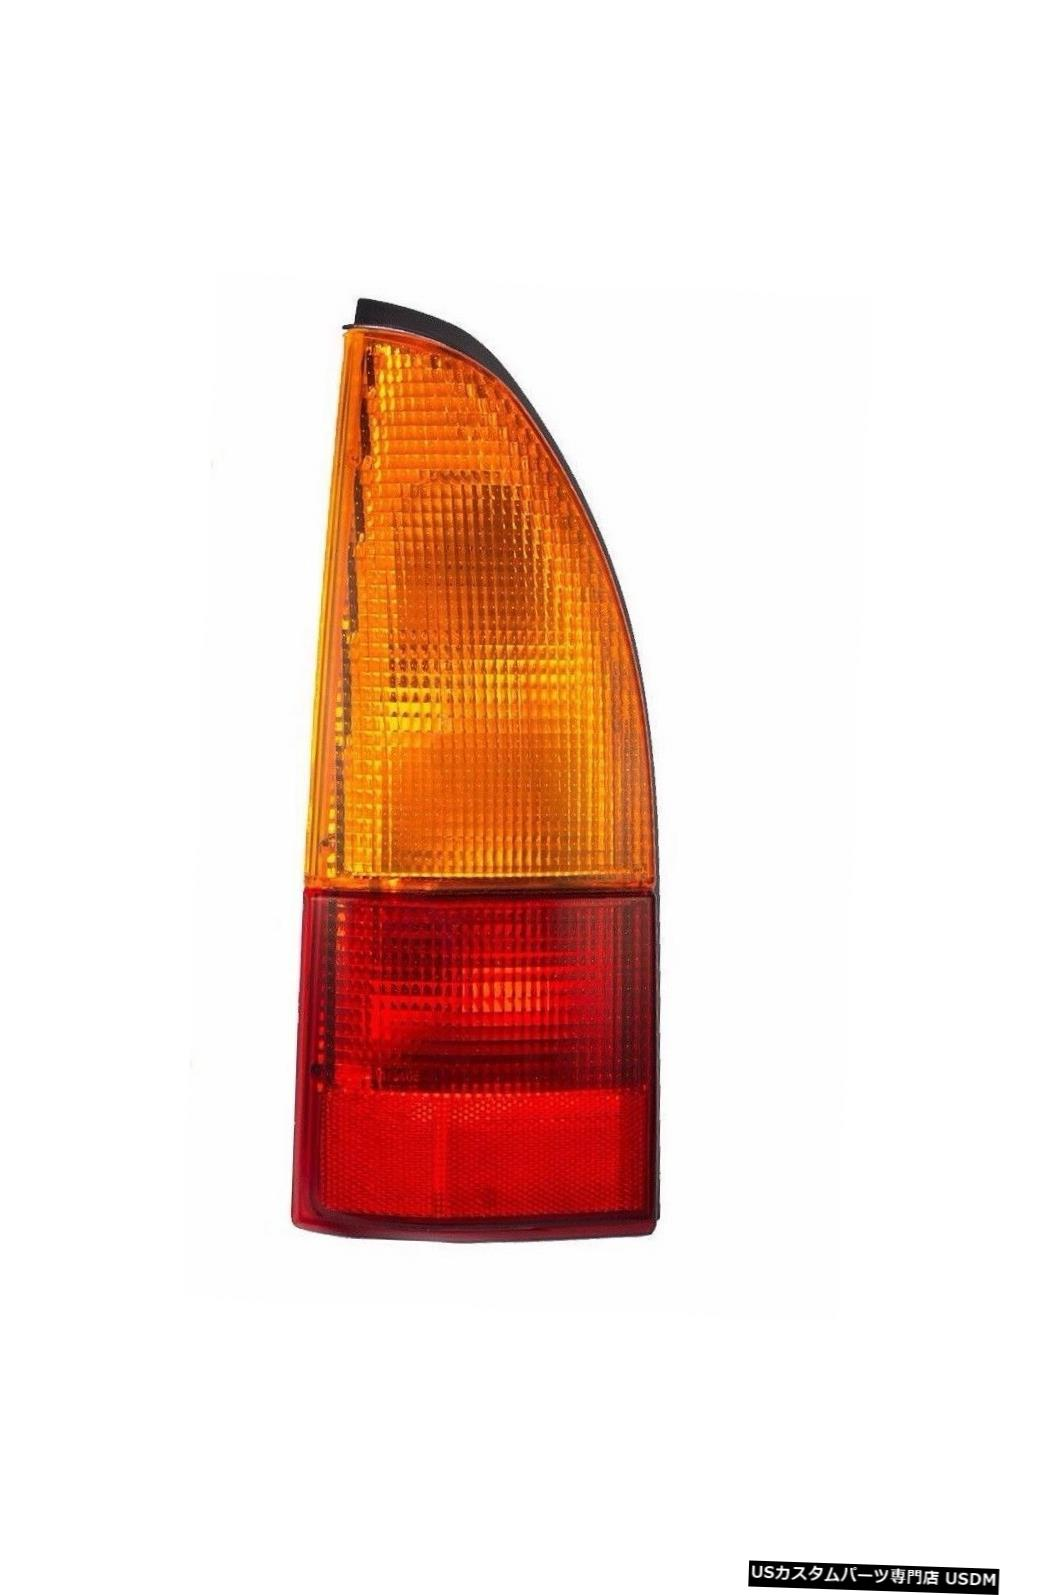 Tail light FLEETWOOD DISCOVERY 2006 2007 2008上部左ドライバーテールランプテールライトRV FLEETWOOD DISCOVERY 2006 2007 2008 UPPER LEFT DRIVER TAIL LAMP TAILLIGHT RV